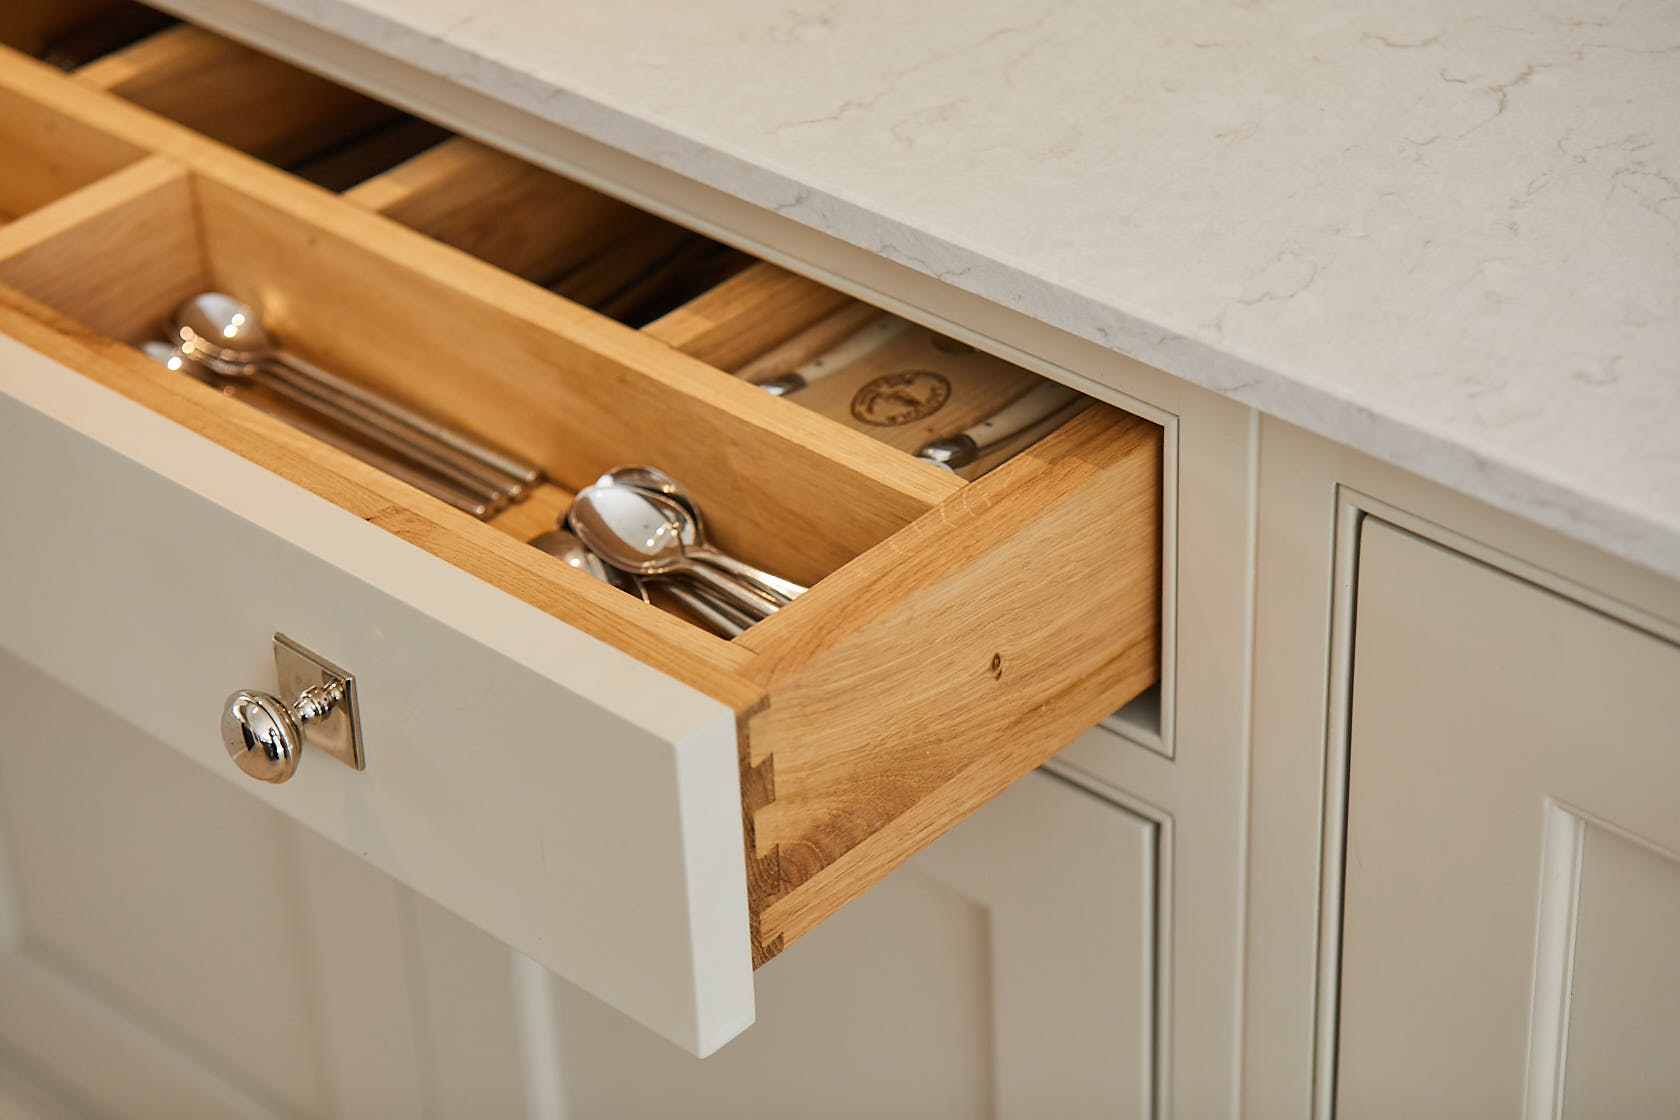 Solid oak drawer box with dovetail joints and cutlery insert